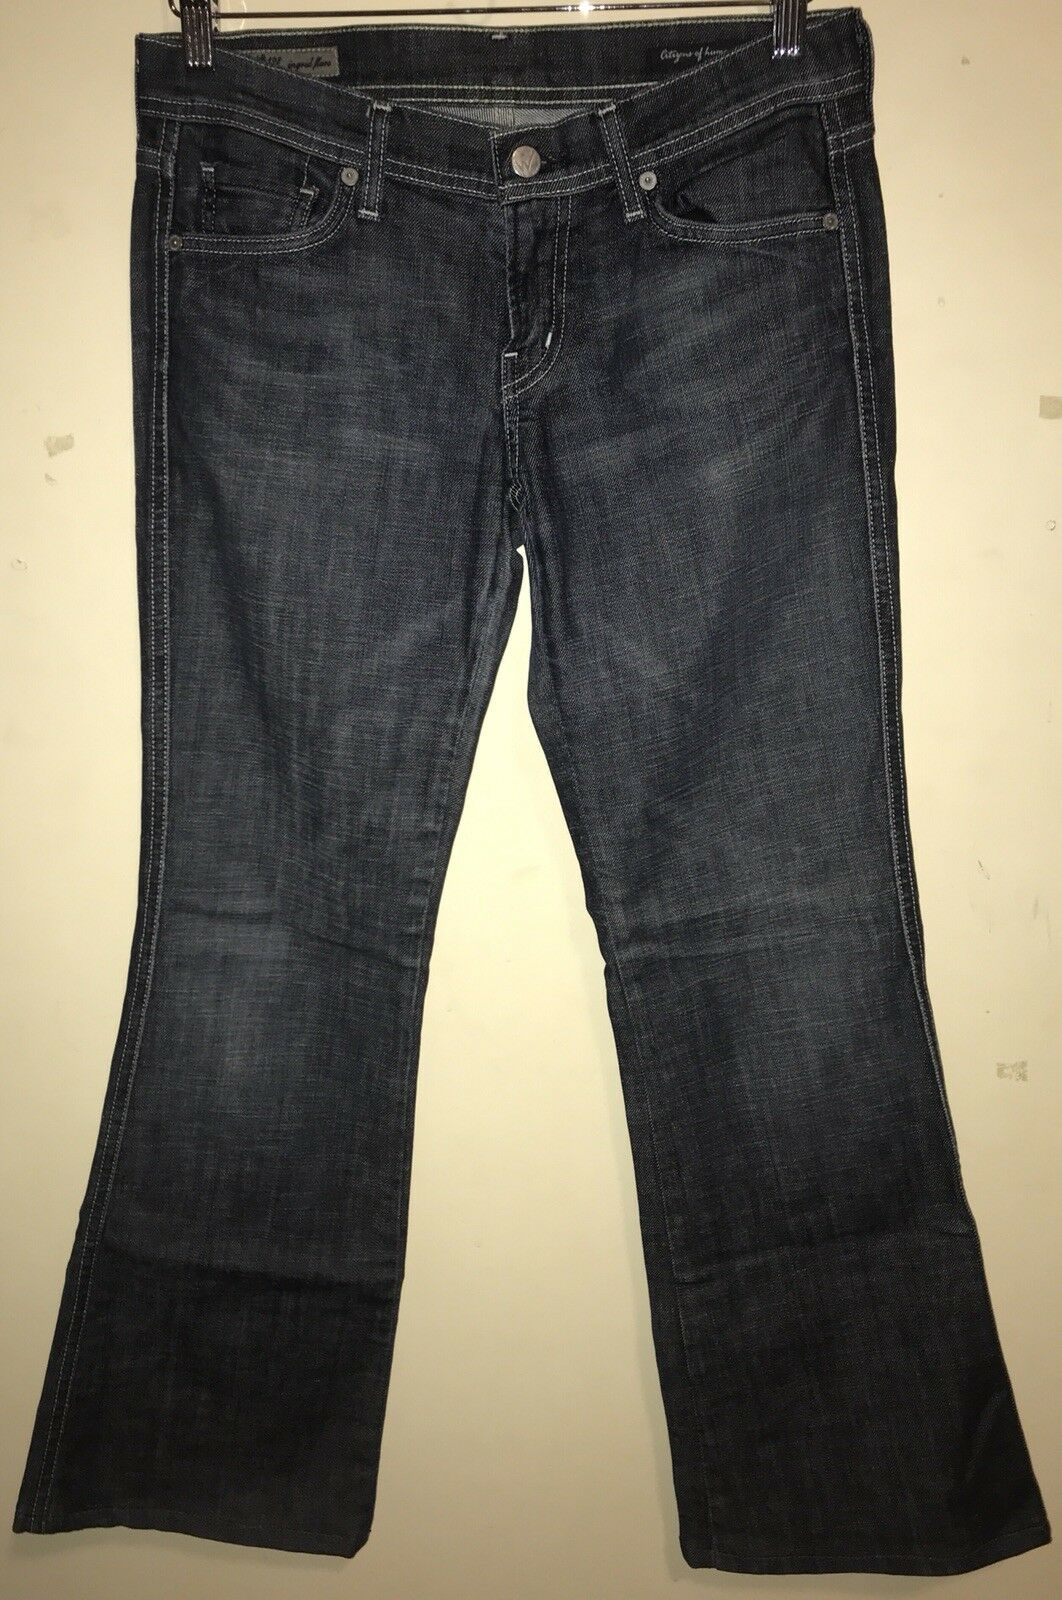 Citizens Of Humanity bluee Jeans Size 28 X 28